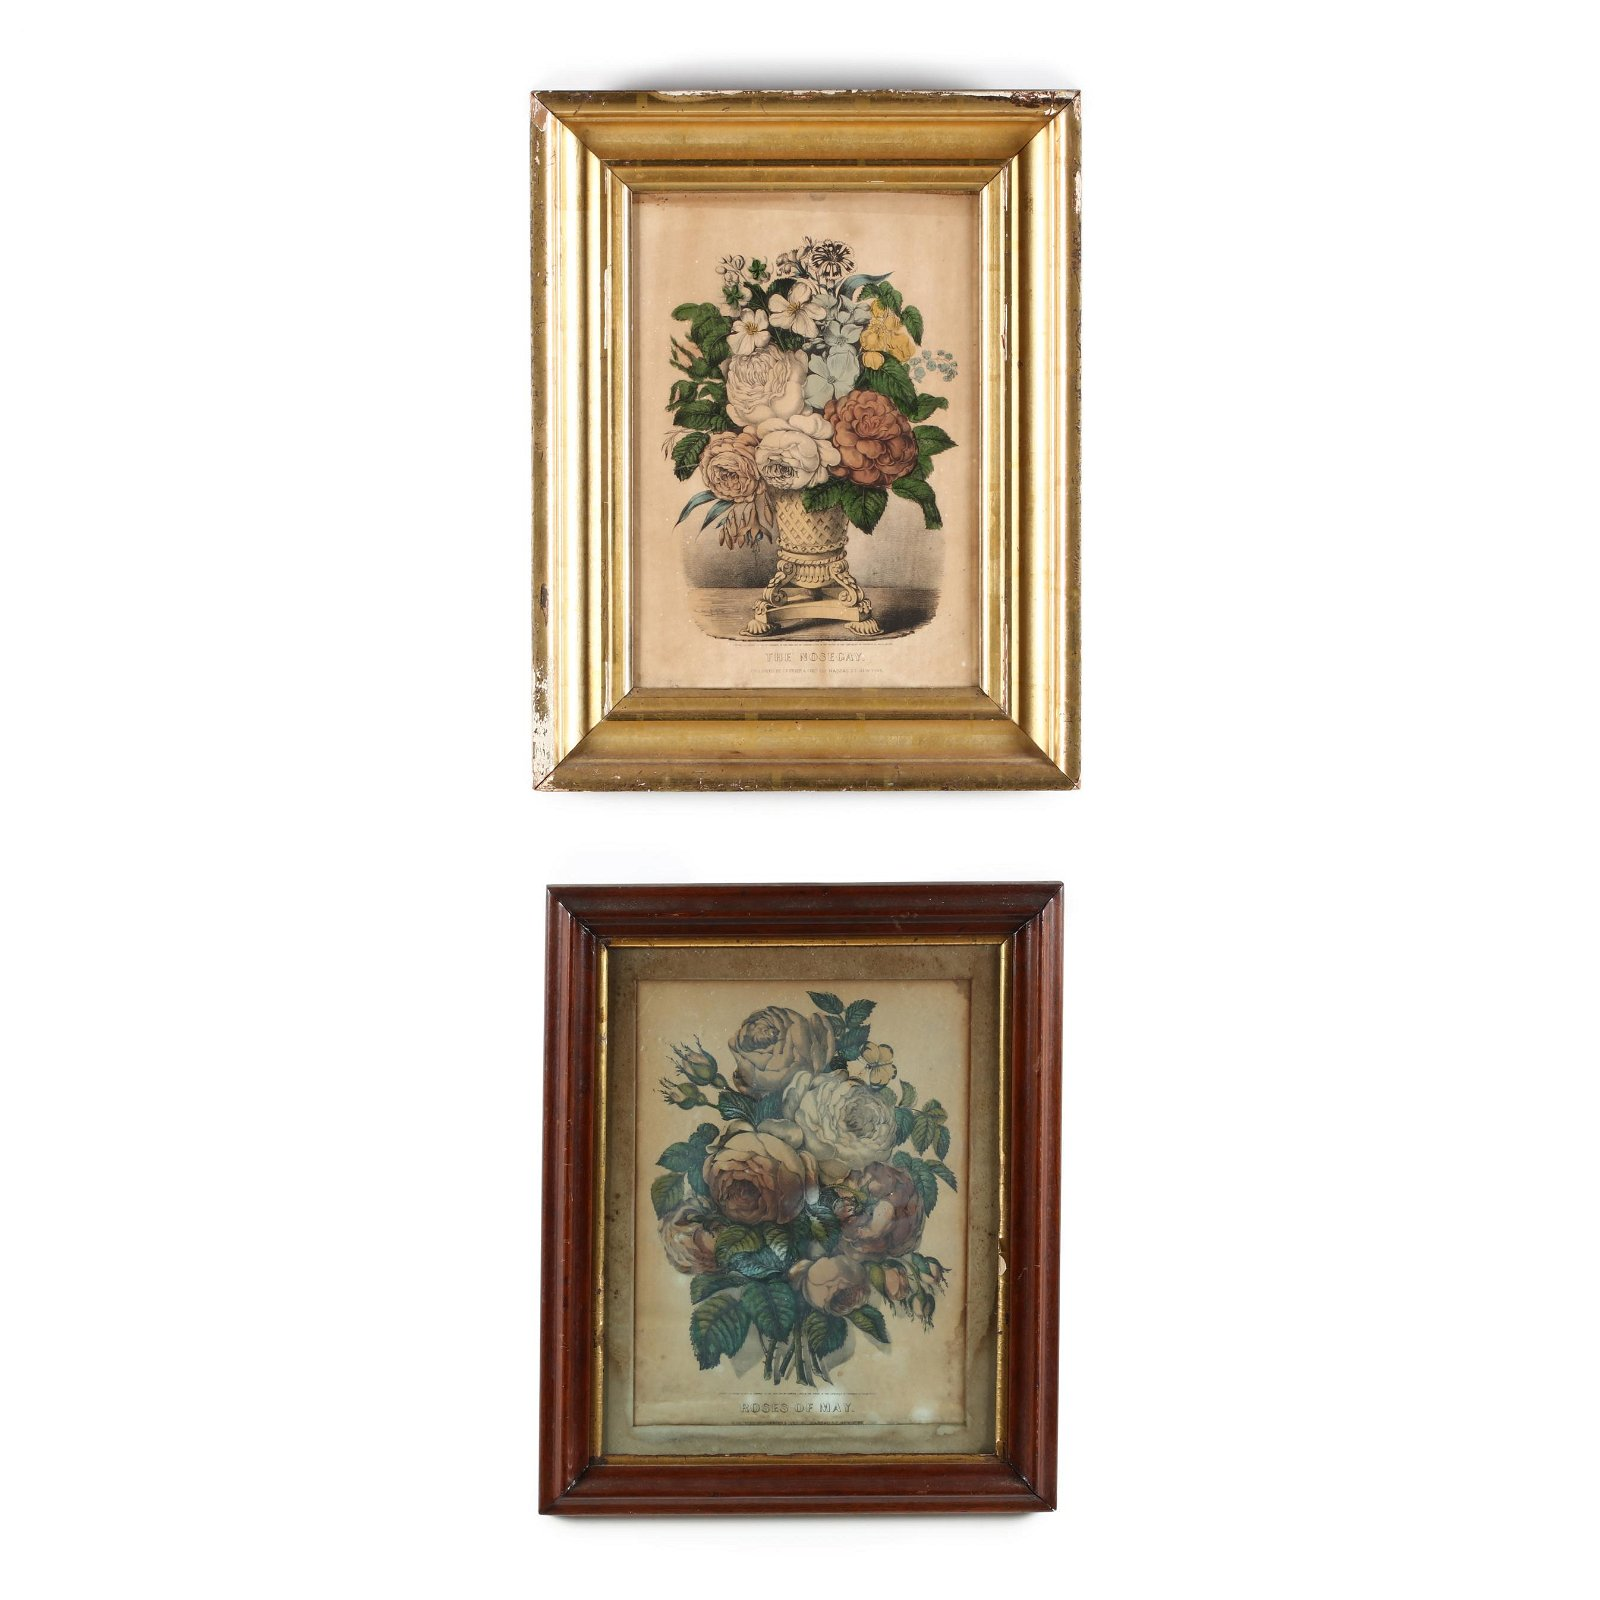 Two Currier & Ives Botanical Prints